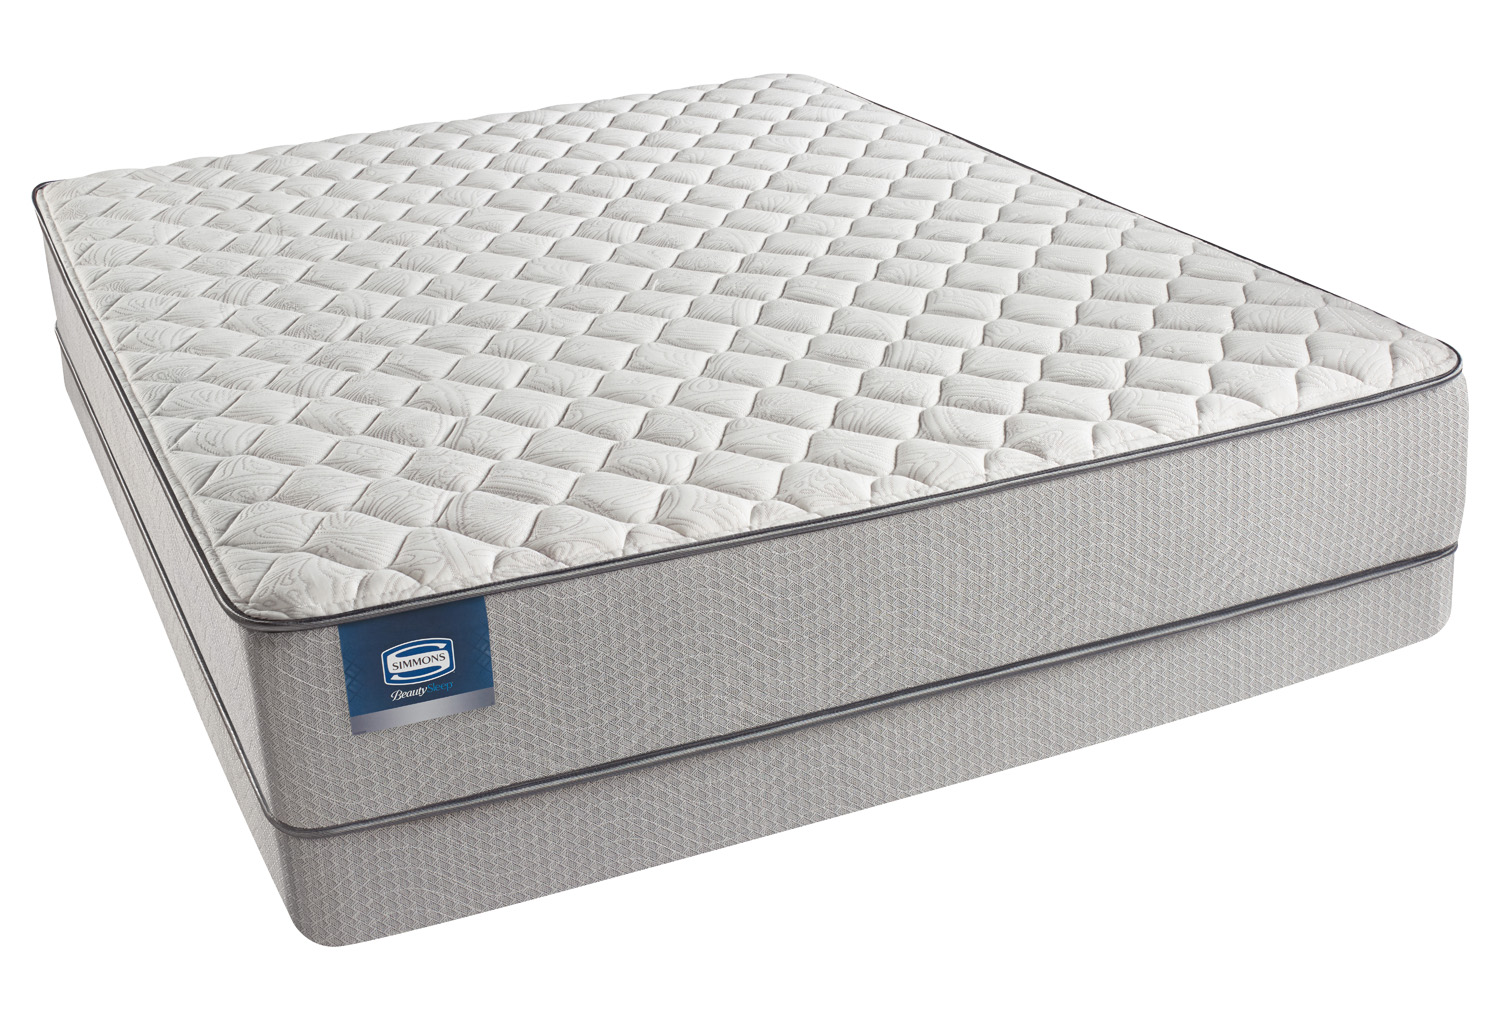 Simmons BeautySleep Firm Mattress